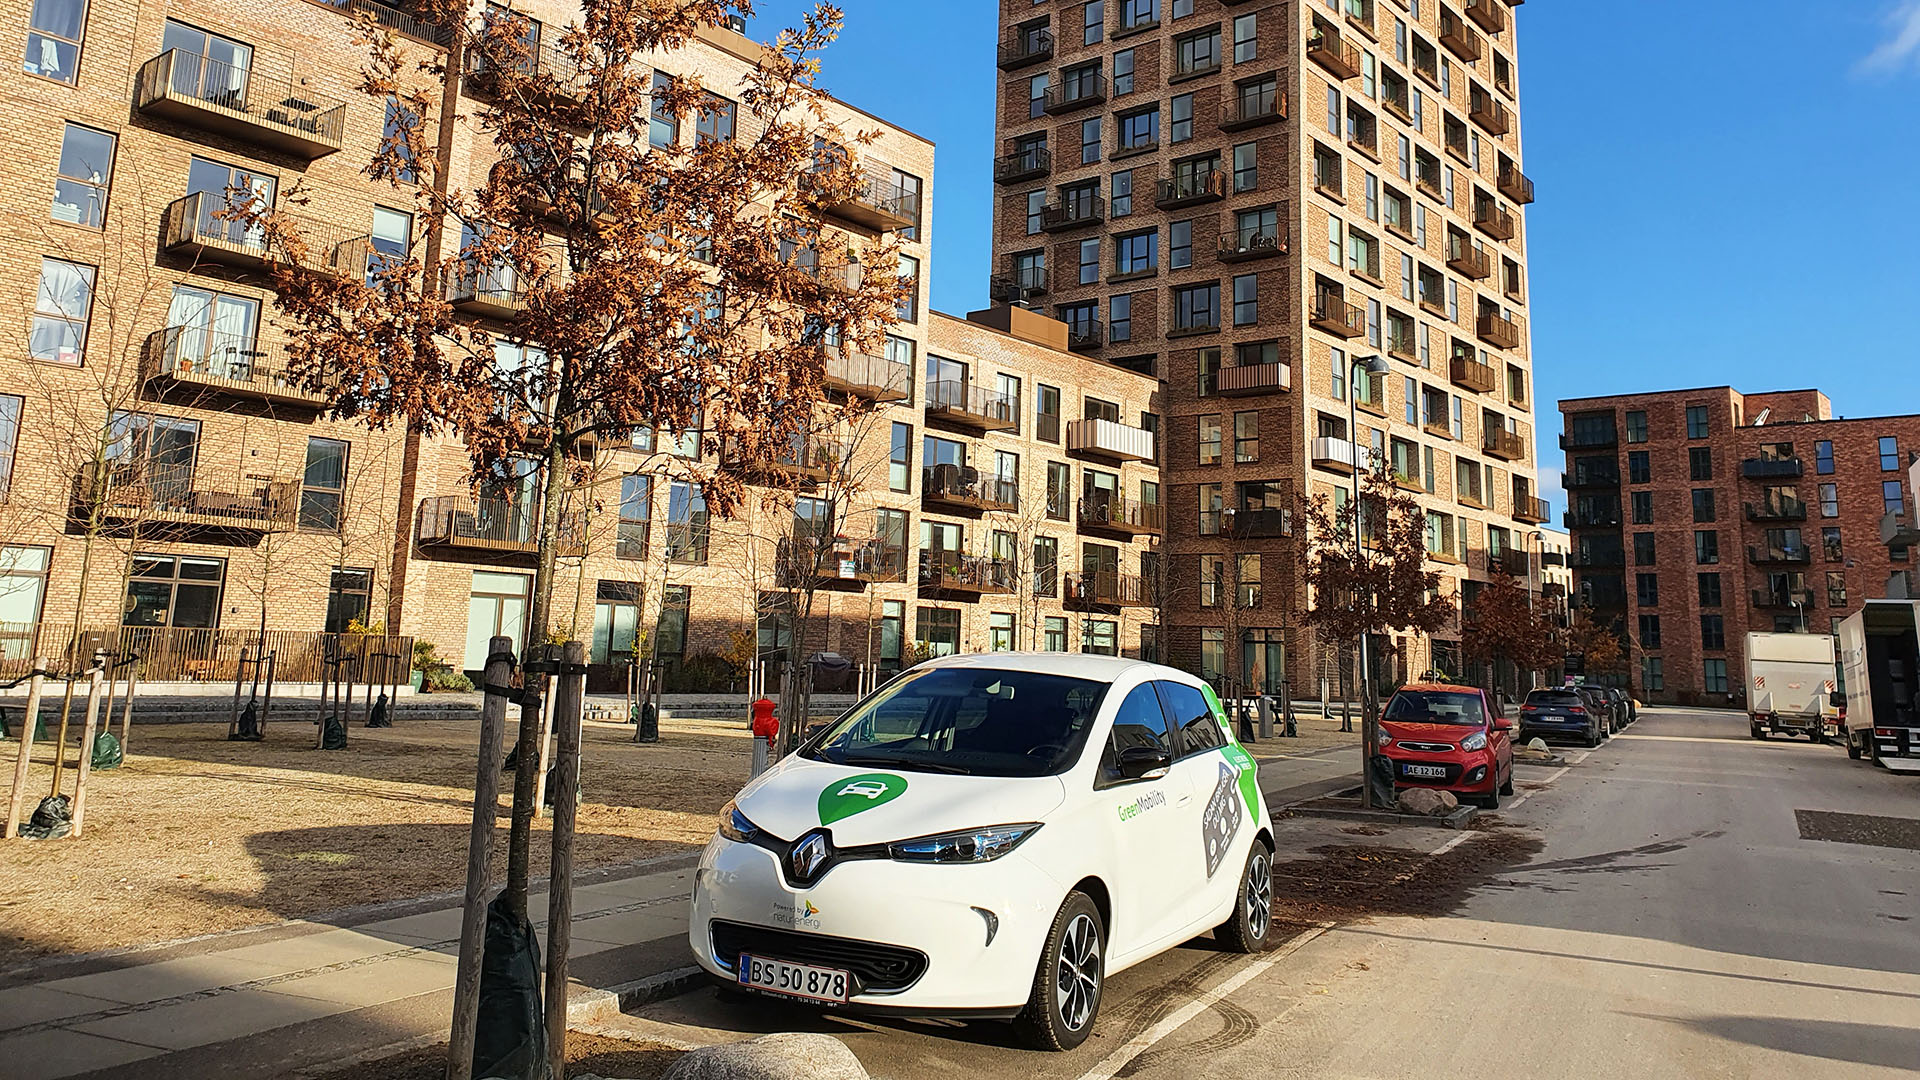 Park for free with GreenMobility